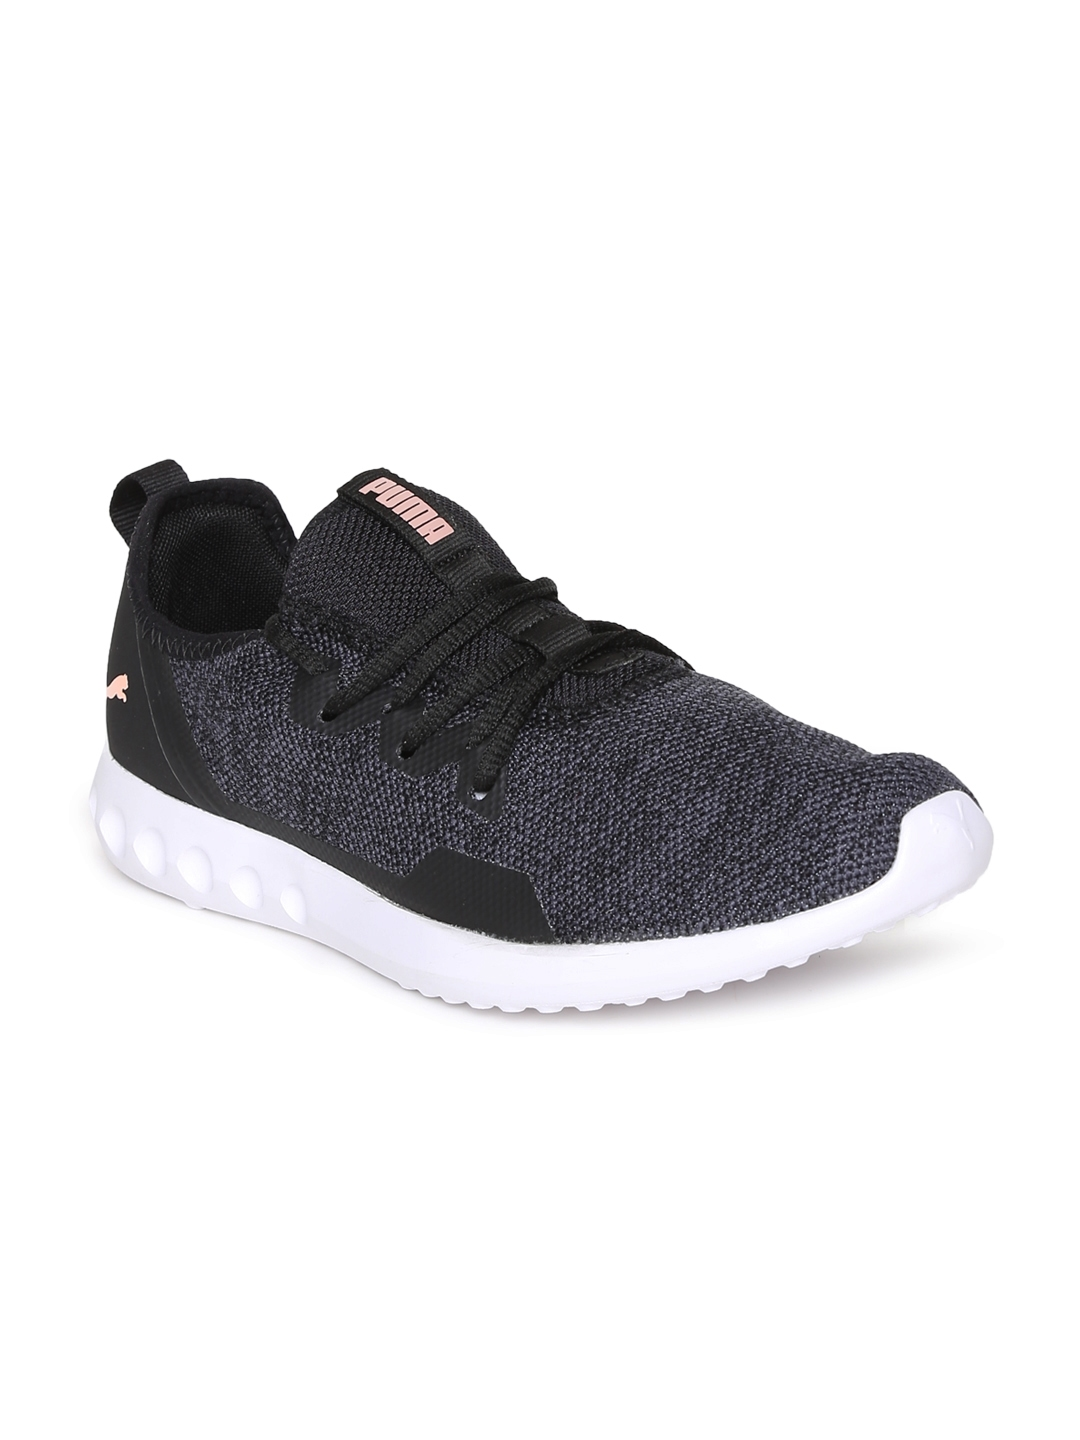 743fd4c01b64 Buy Puma Women Carson 2 X Knit Running Shoes - Sports Shoes for ...